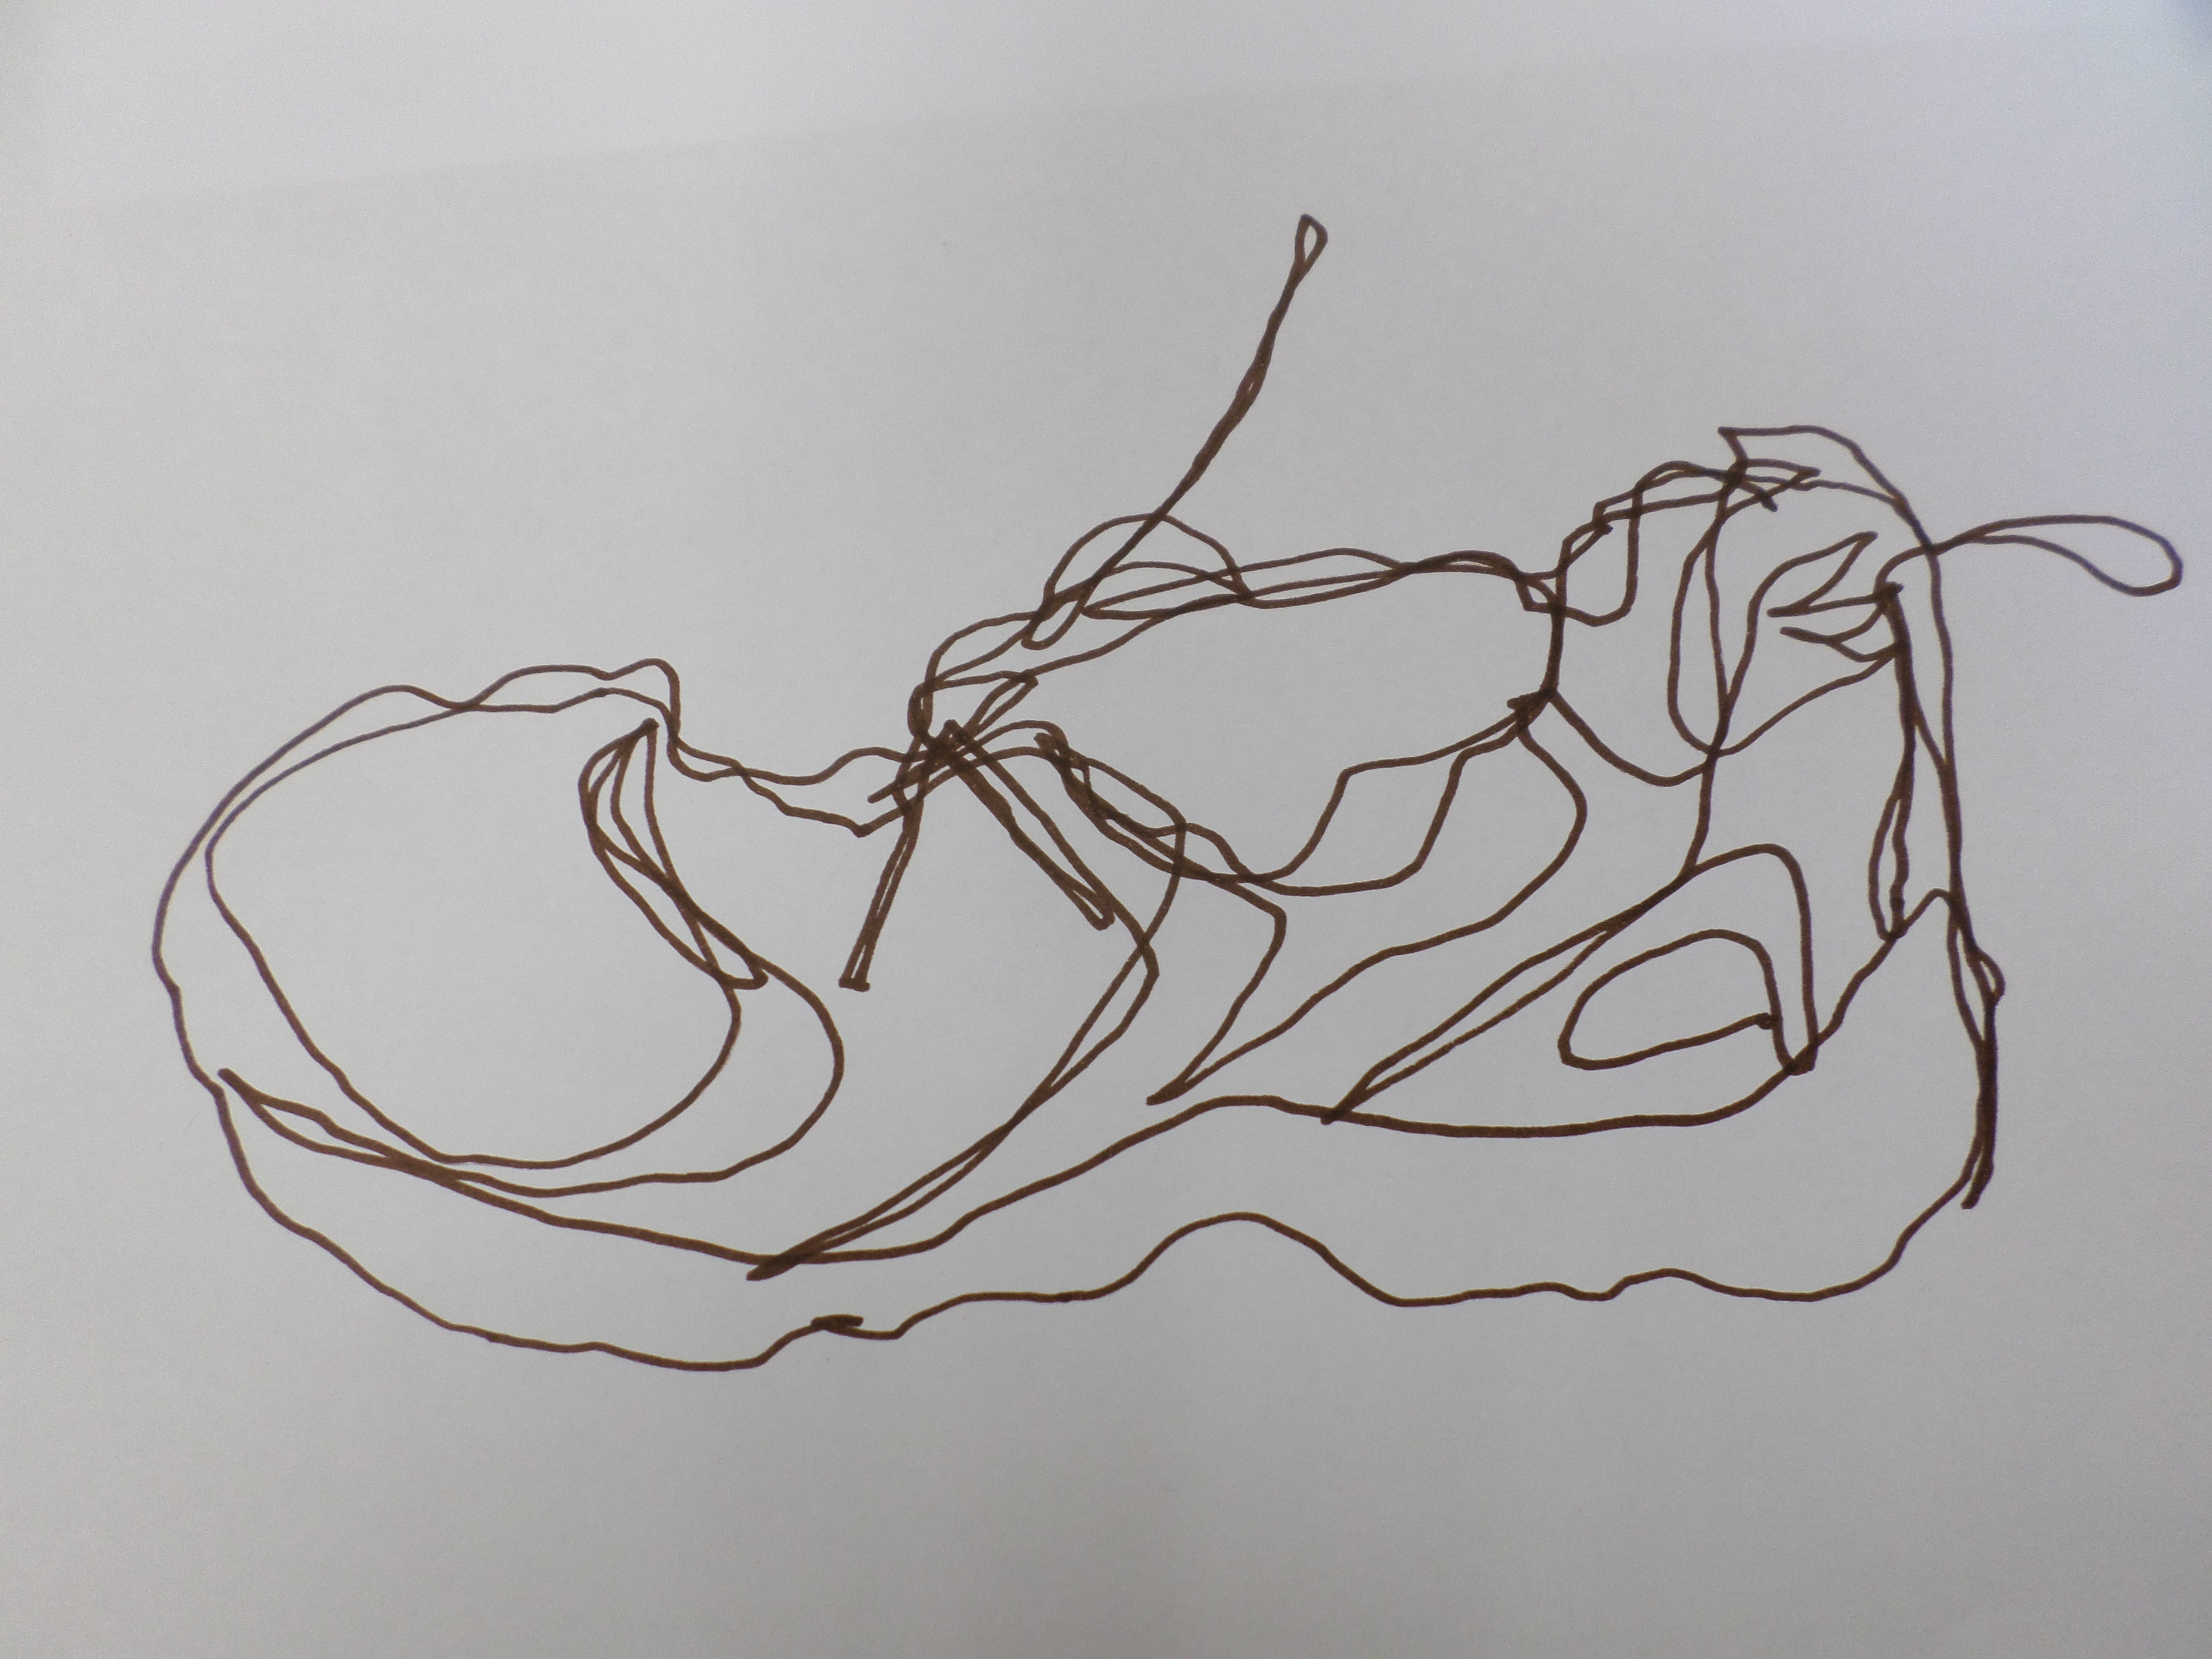 Contour Line Drawing In Art : Contour drawing artmanews